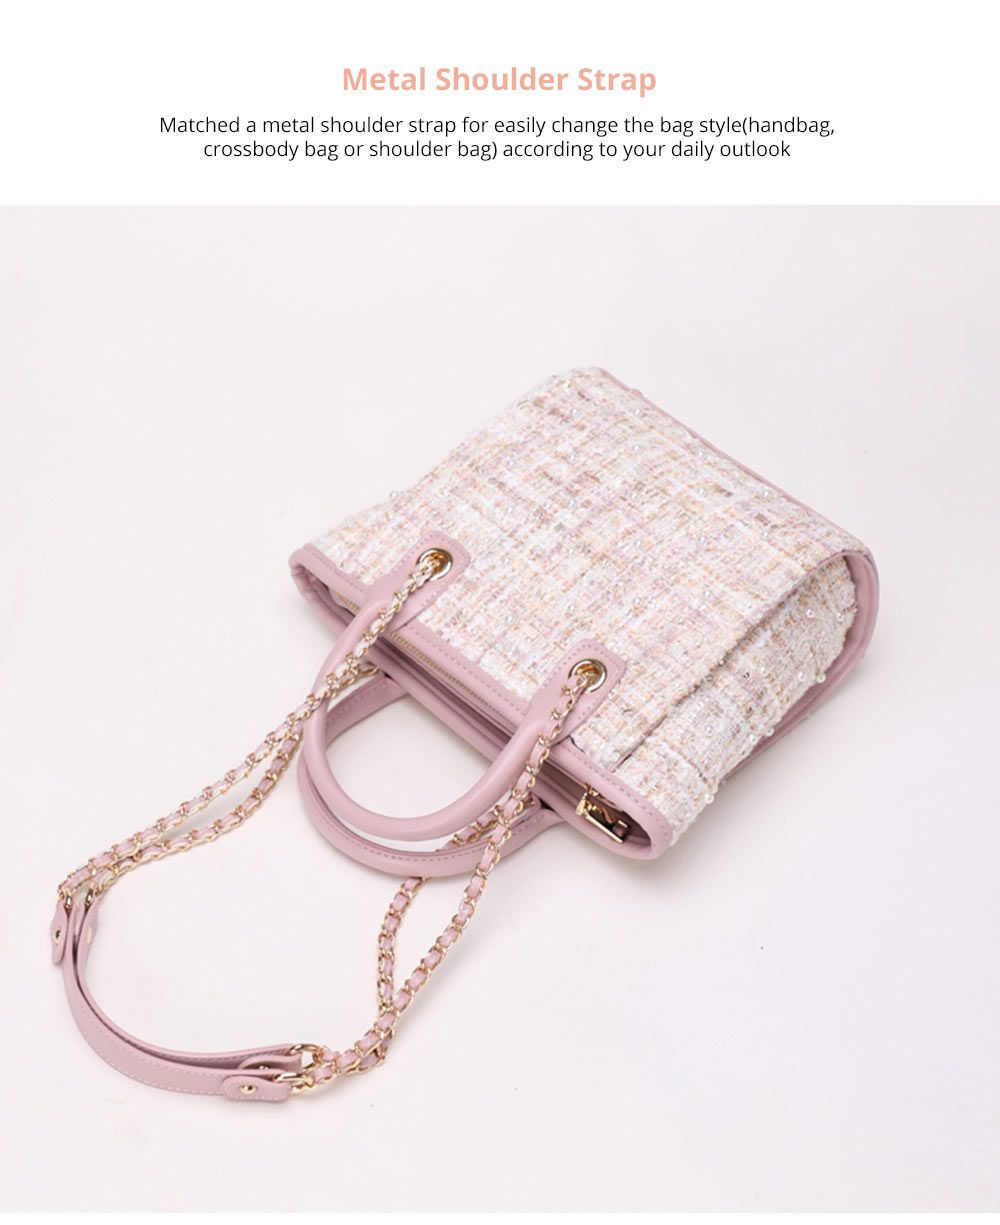 Elegant Girls Handbag with Pearl Decoration Sleek Weave Women's Bag with Metal Shoulder Strap Woolen Crossbody Bag for Women 10